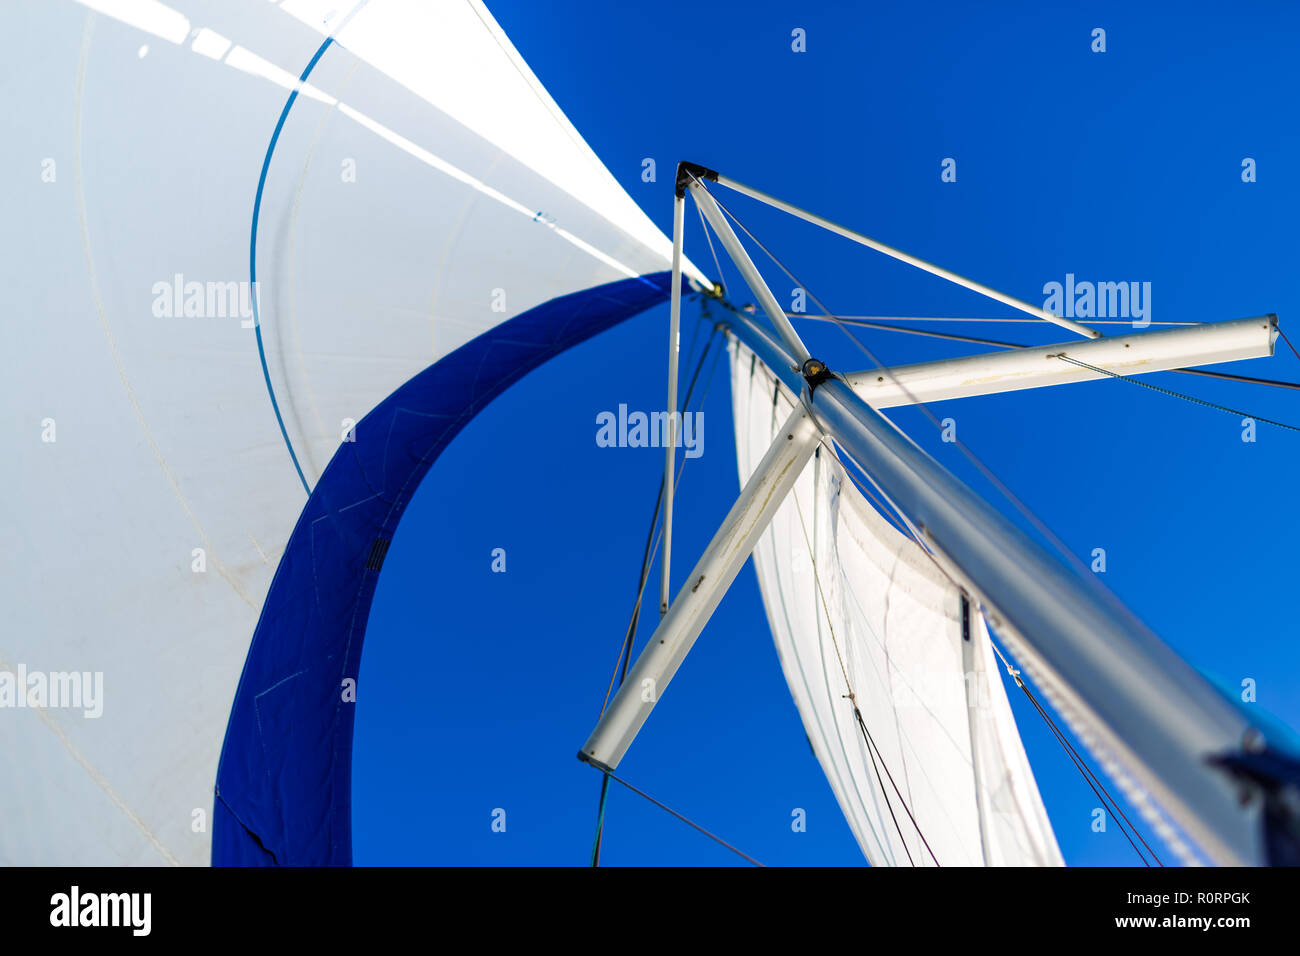 White sails of a sailing yacht in the wind. Recreational water sport - Stock Image